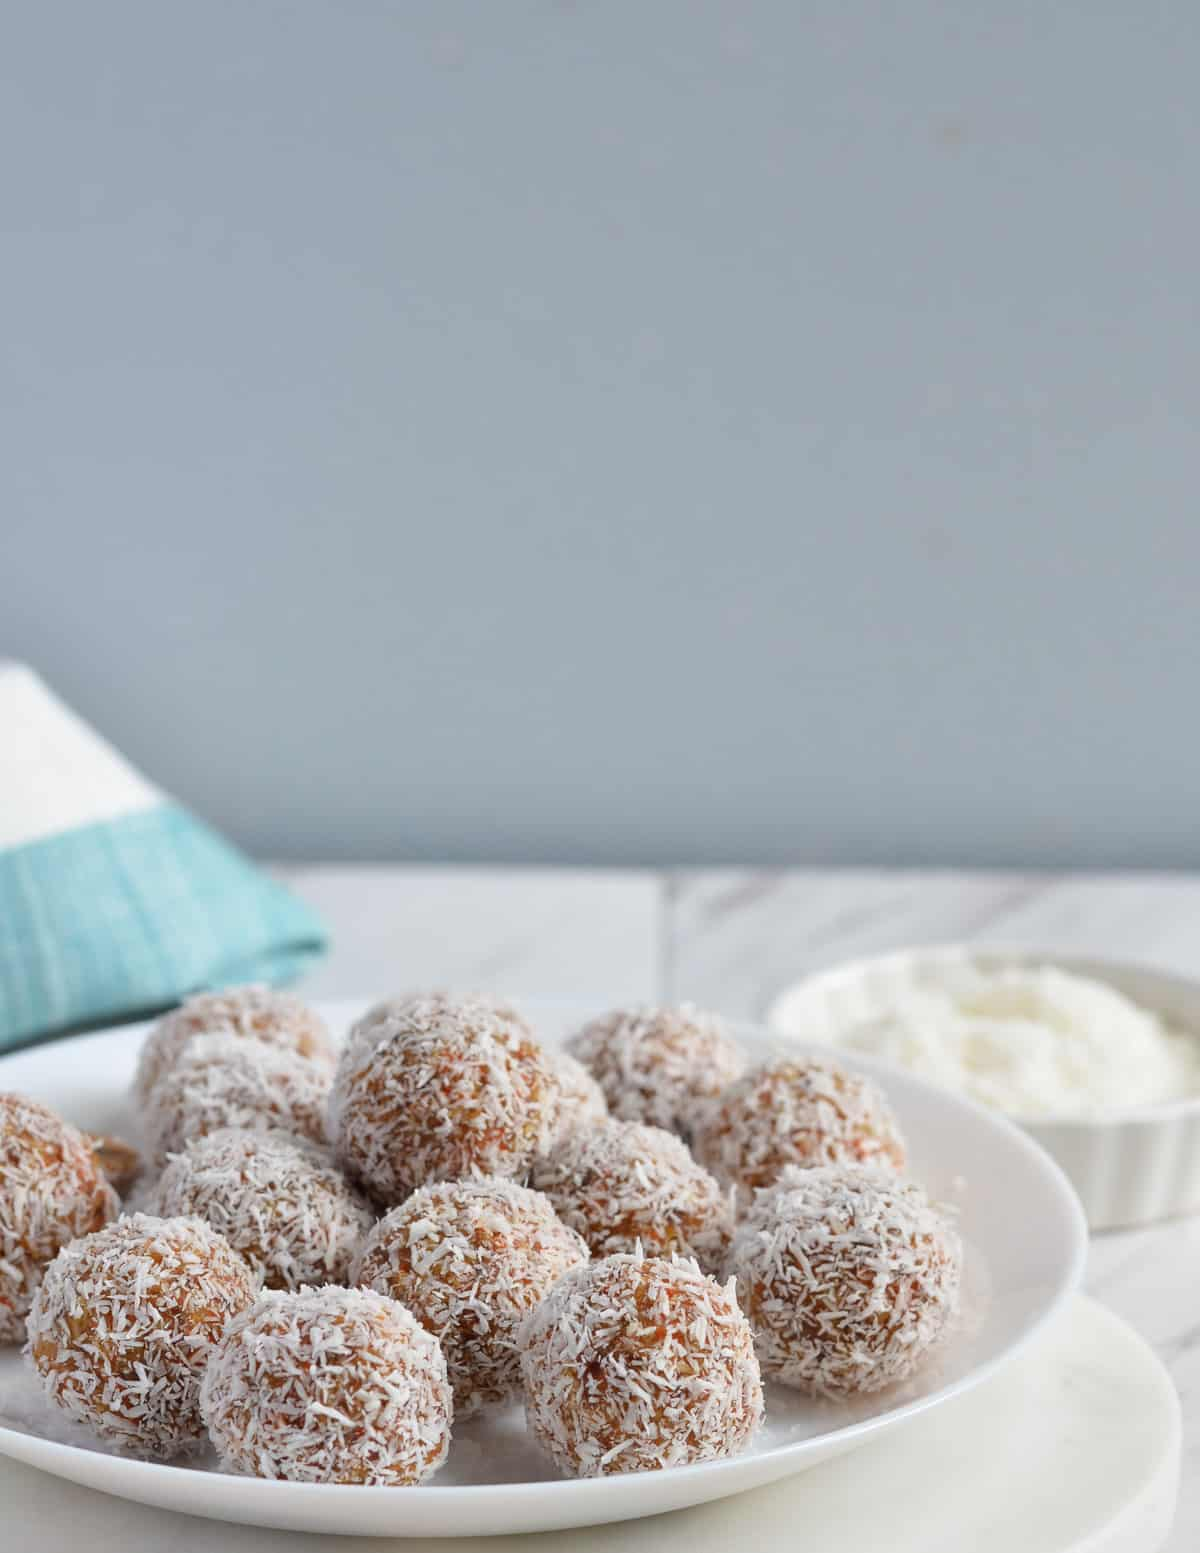 a side view of carrot cake bliss balls